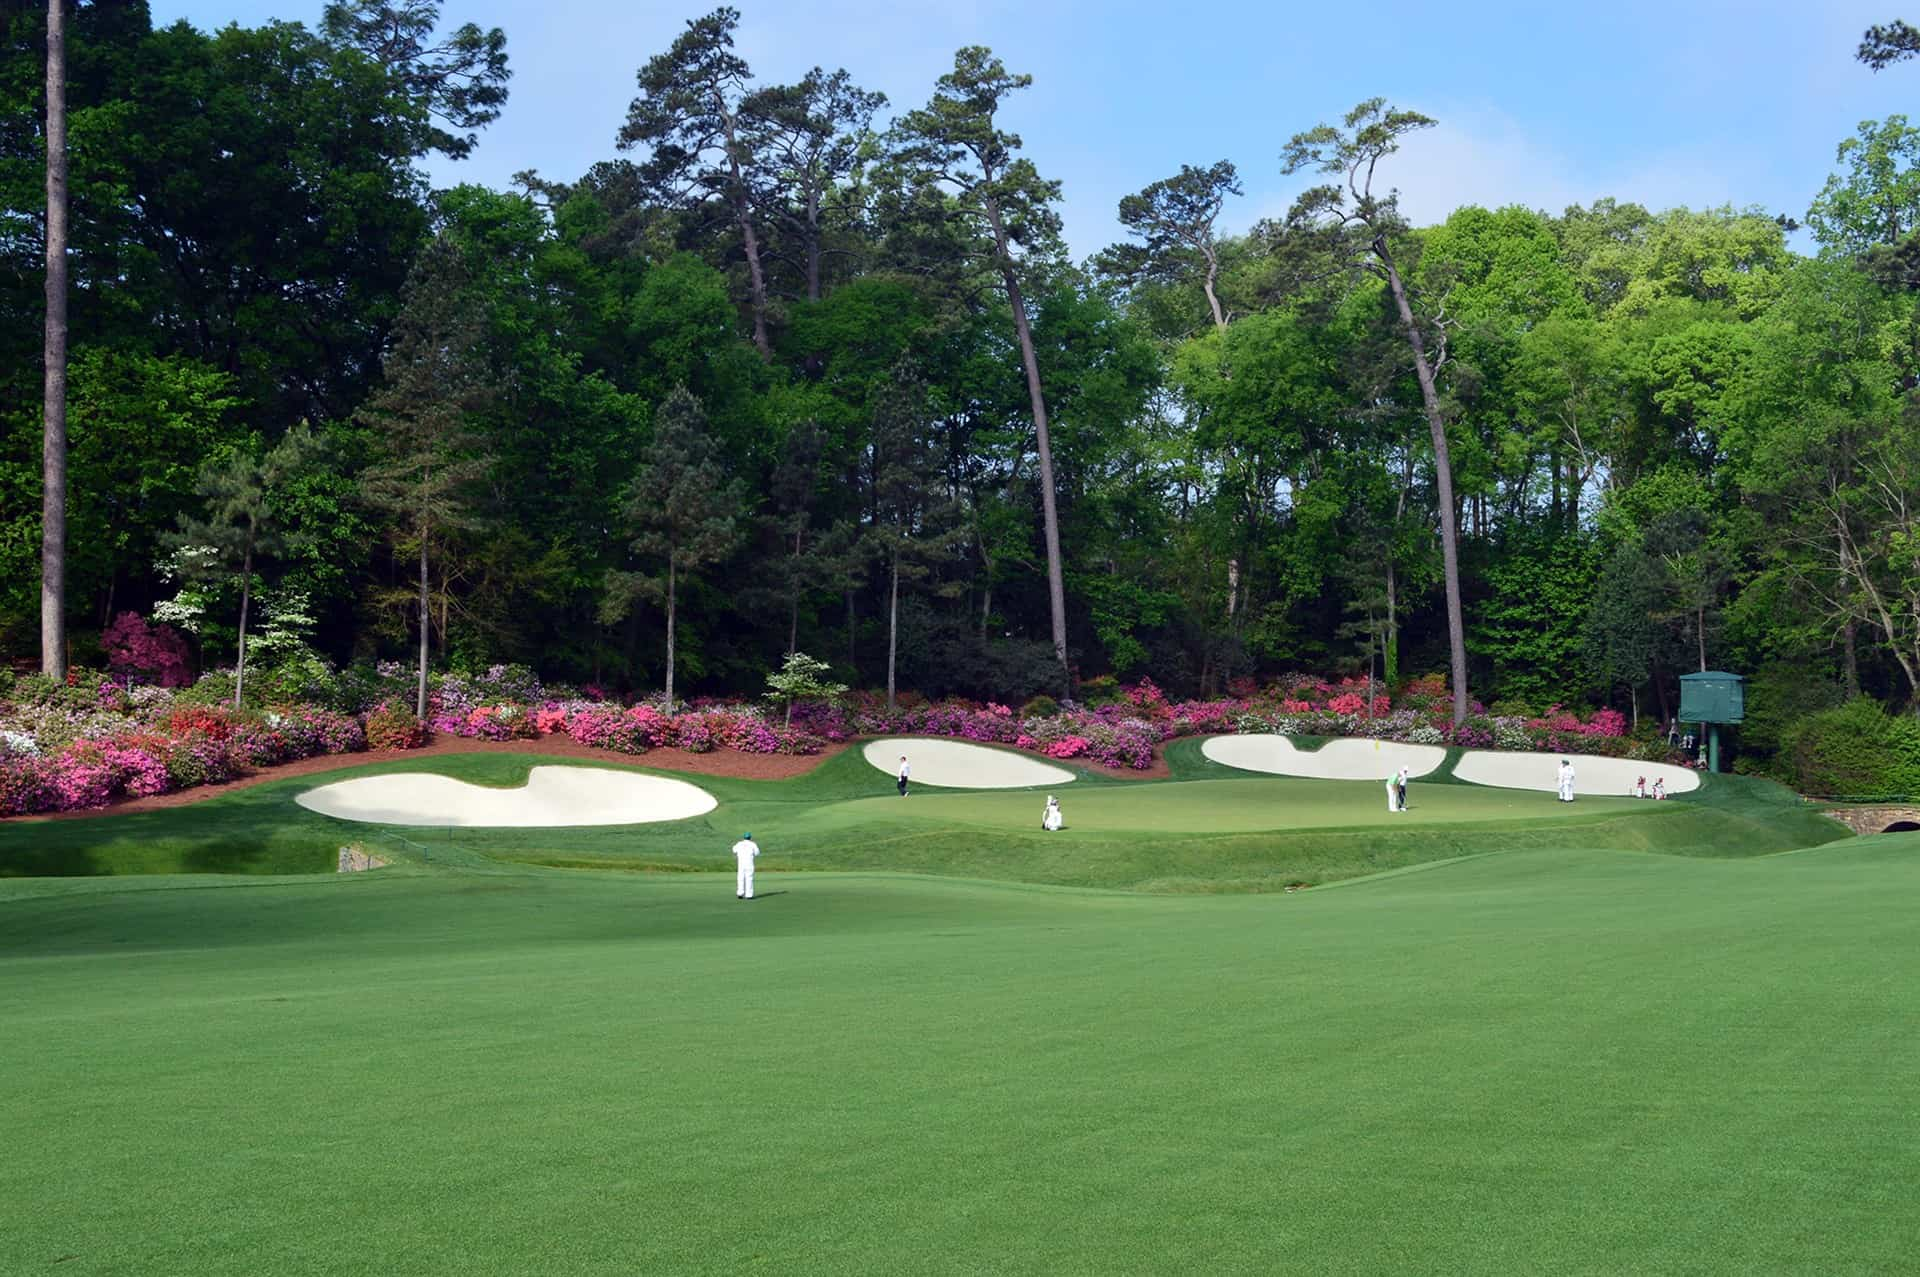 Photograph of hole 13, Azalea, at tThe Masters in Augusta with four bunkers and a line of azaleas behind them.